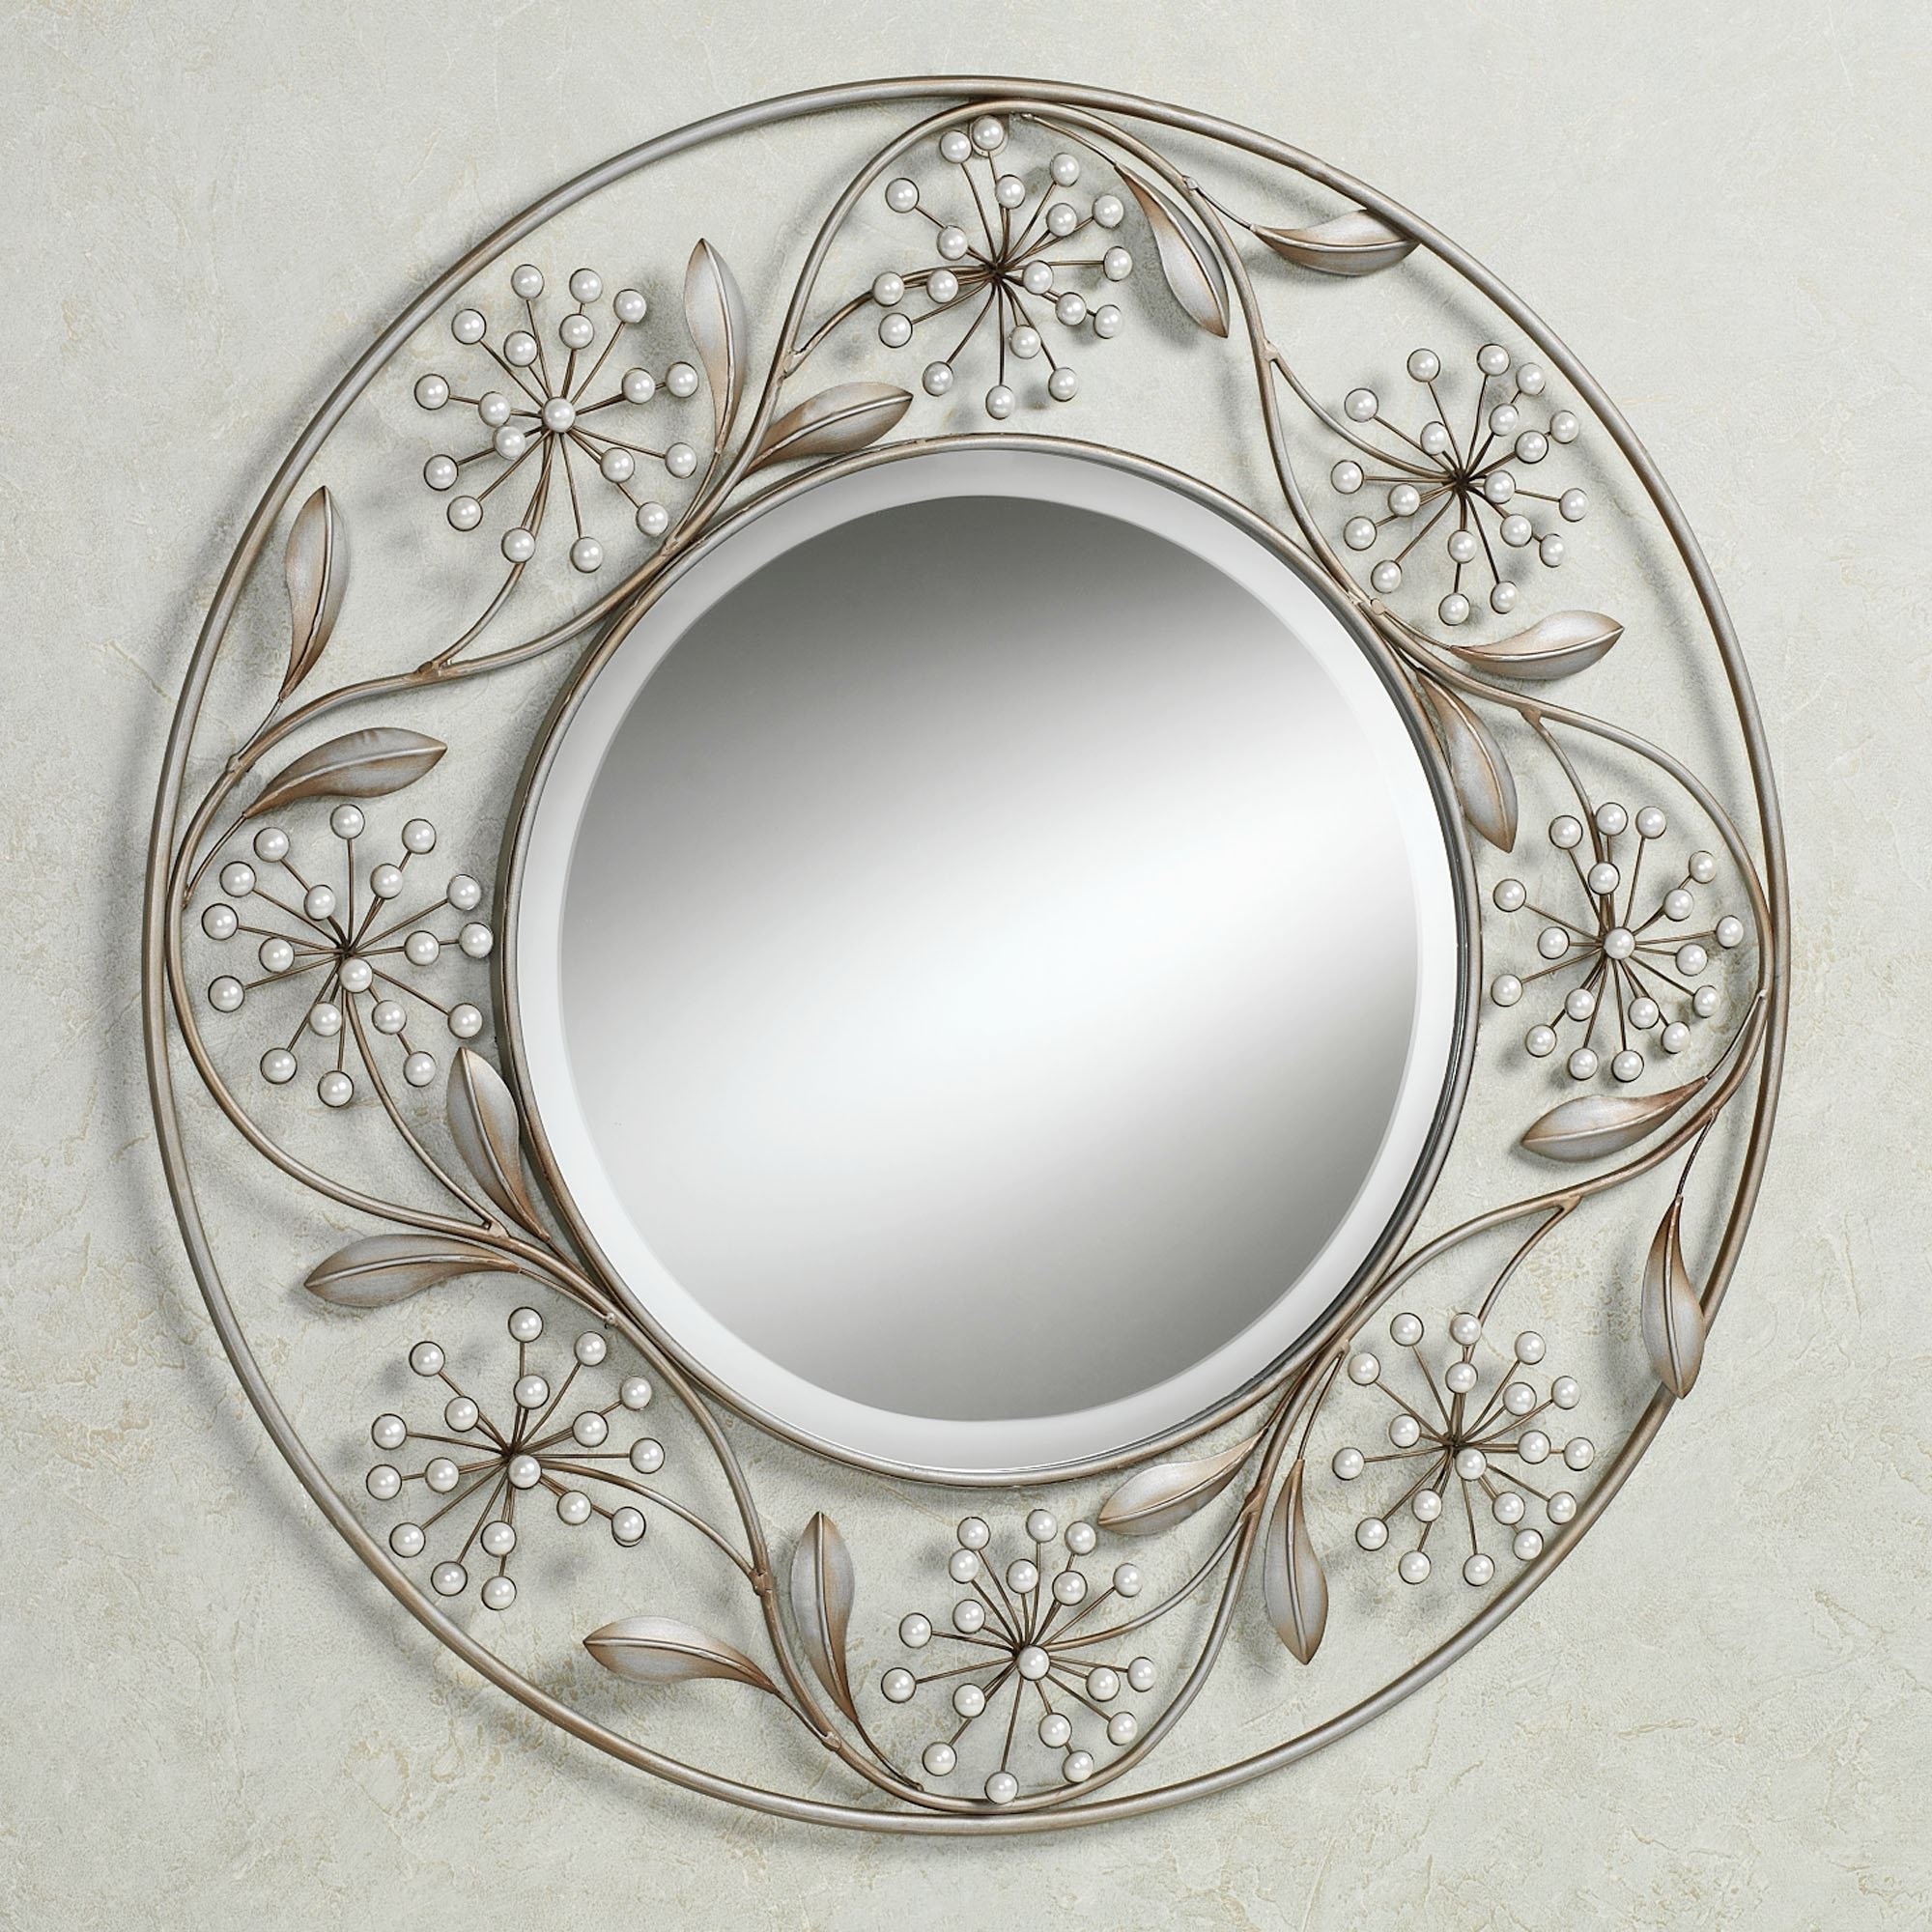 Pearlette round metal wall mirror Round framed mirror